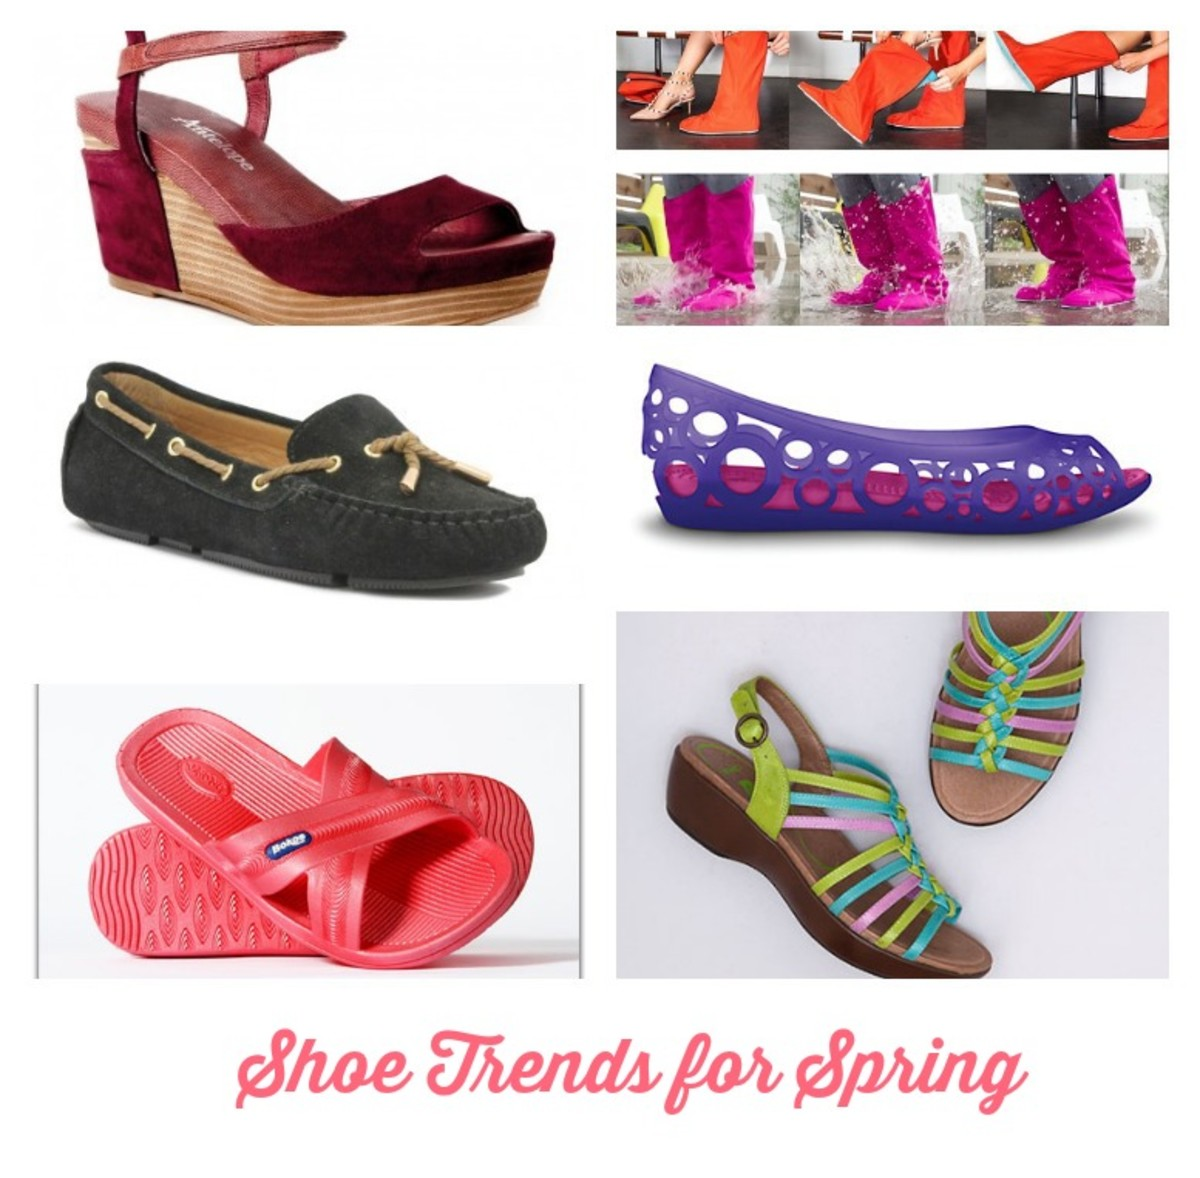 Shoe Trends for Spring.jpg.jpg